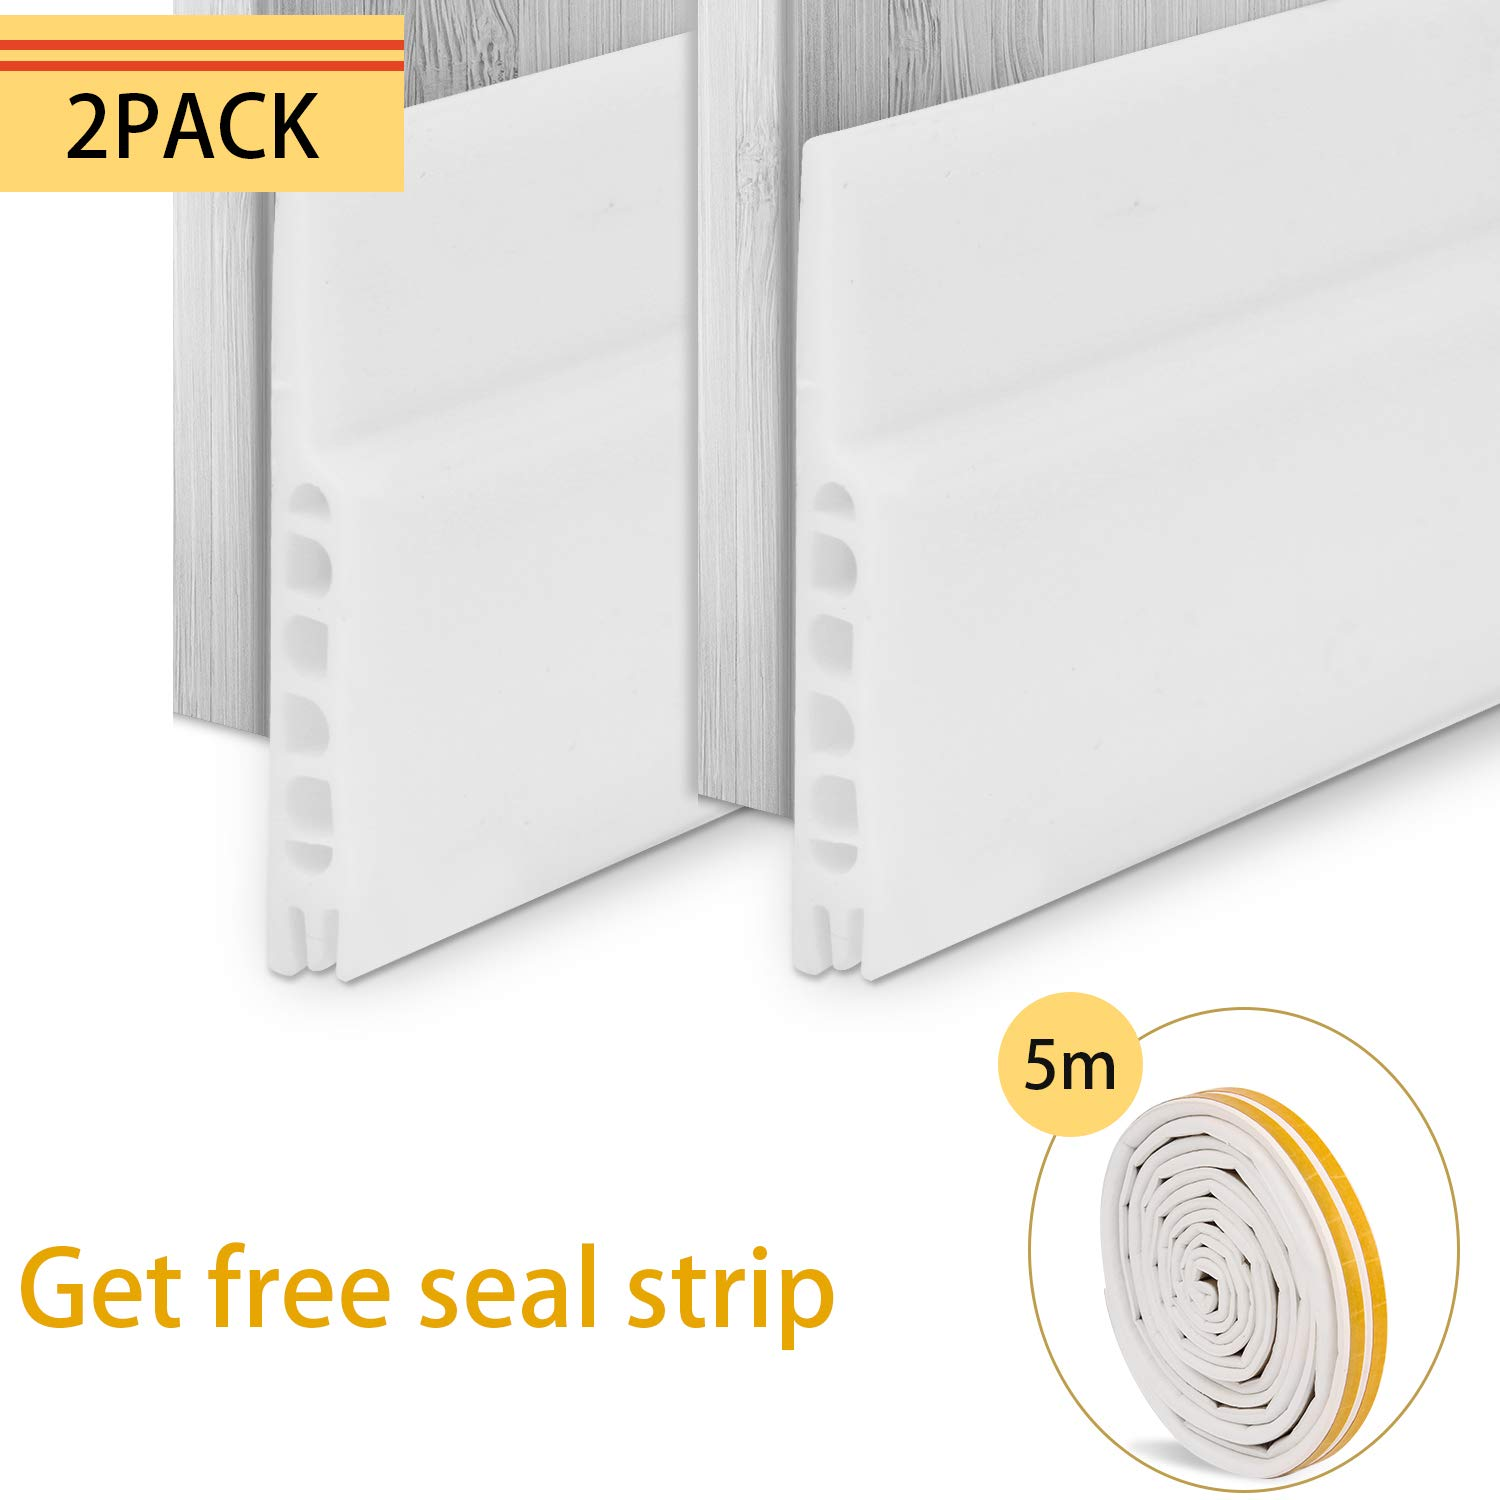 Under Door Seal, Aufisi 2 pcs Strong Adhesive Door Draft Stopper Door Sweep Blocker for Soundproof and Prevent Bugs, Door Bottom Seal White 1.7 W x 39 L, 1 pcs Weatherproof Door Seal Stripping 5M